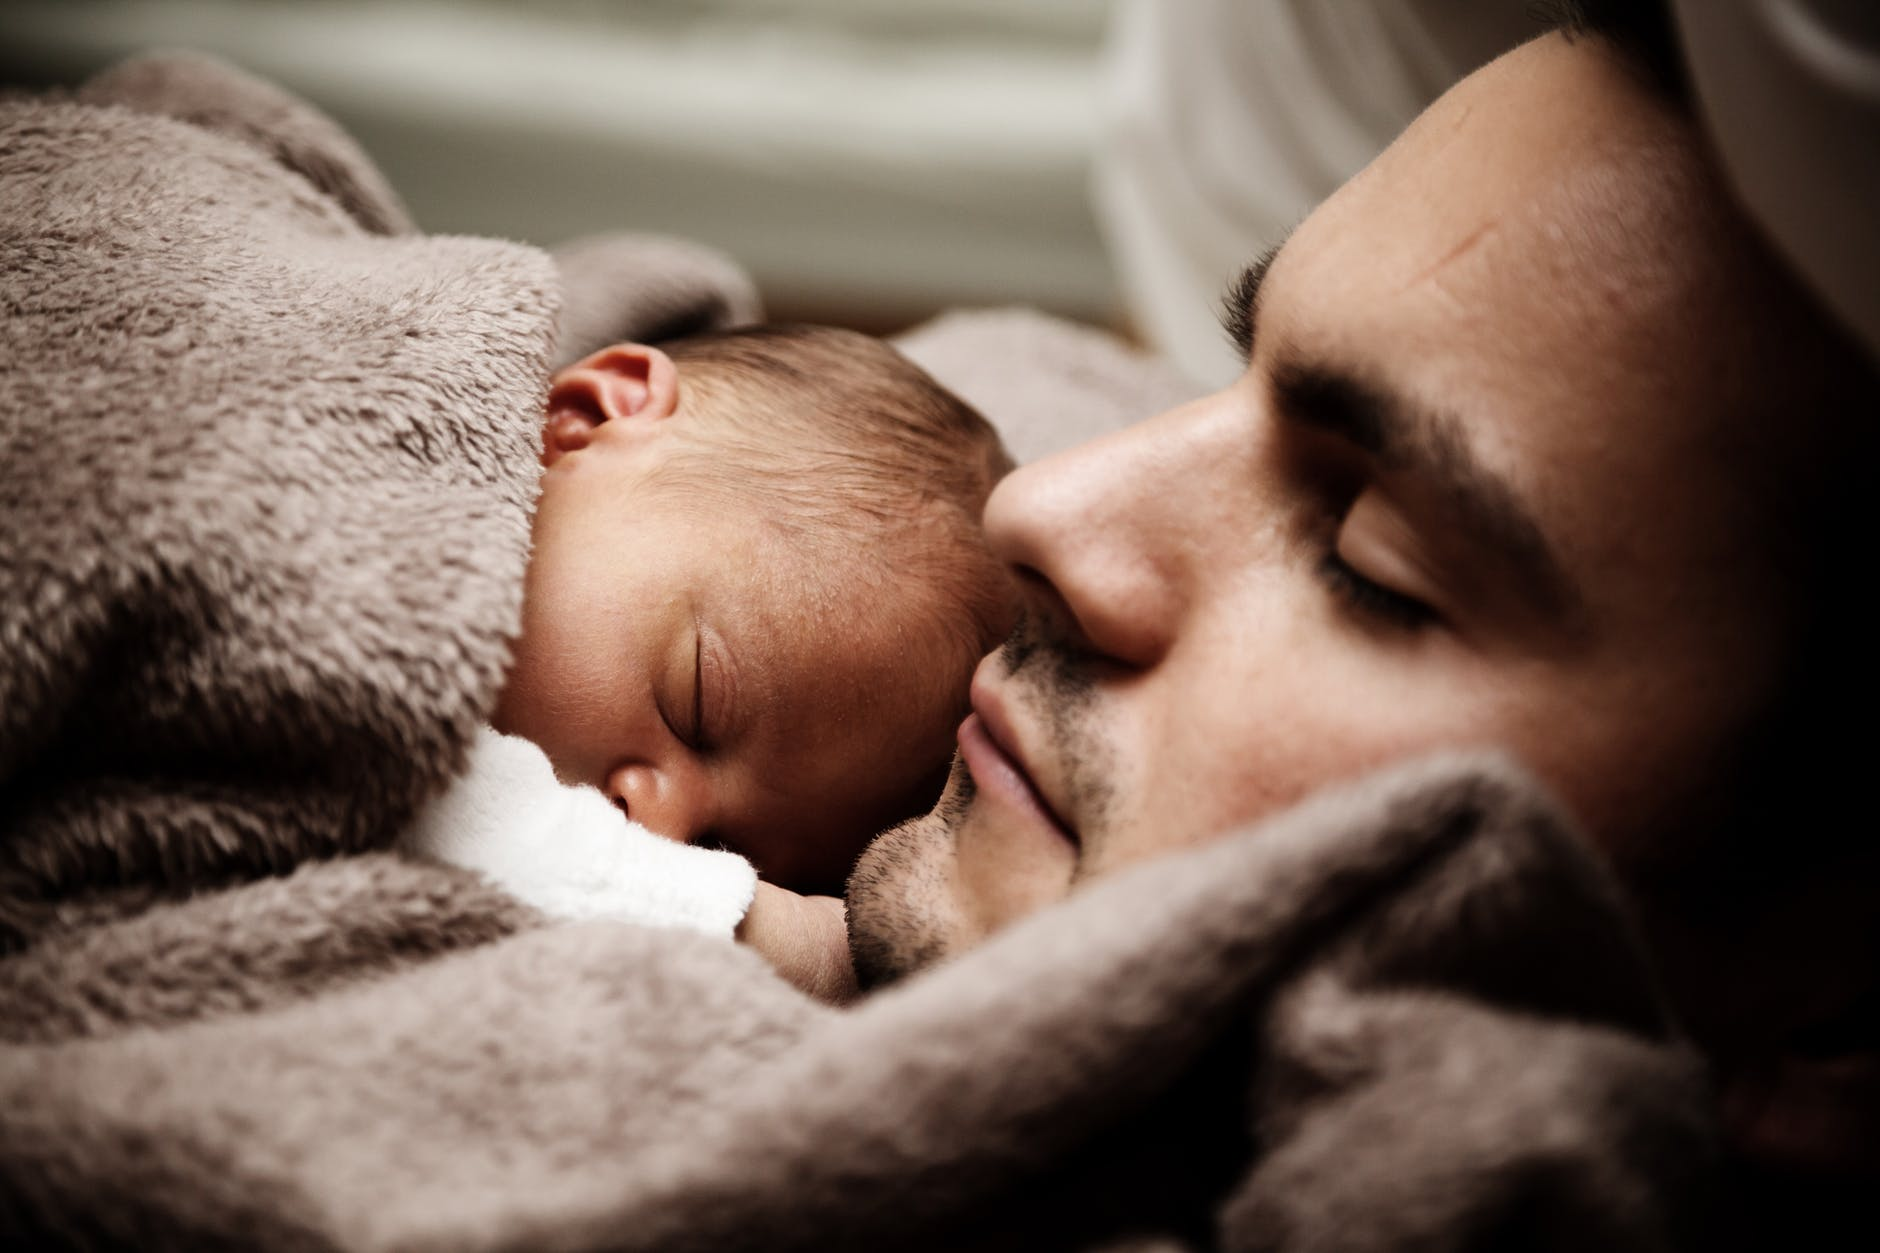 A doting dad sleeps in with his baby | Photo: Pexel